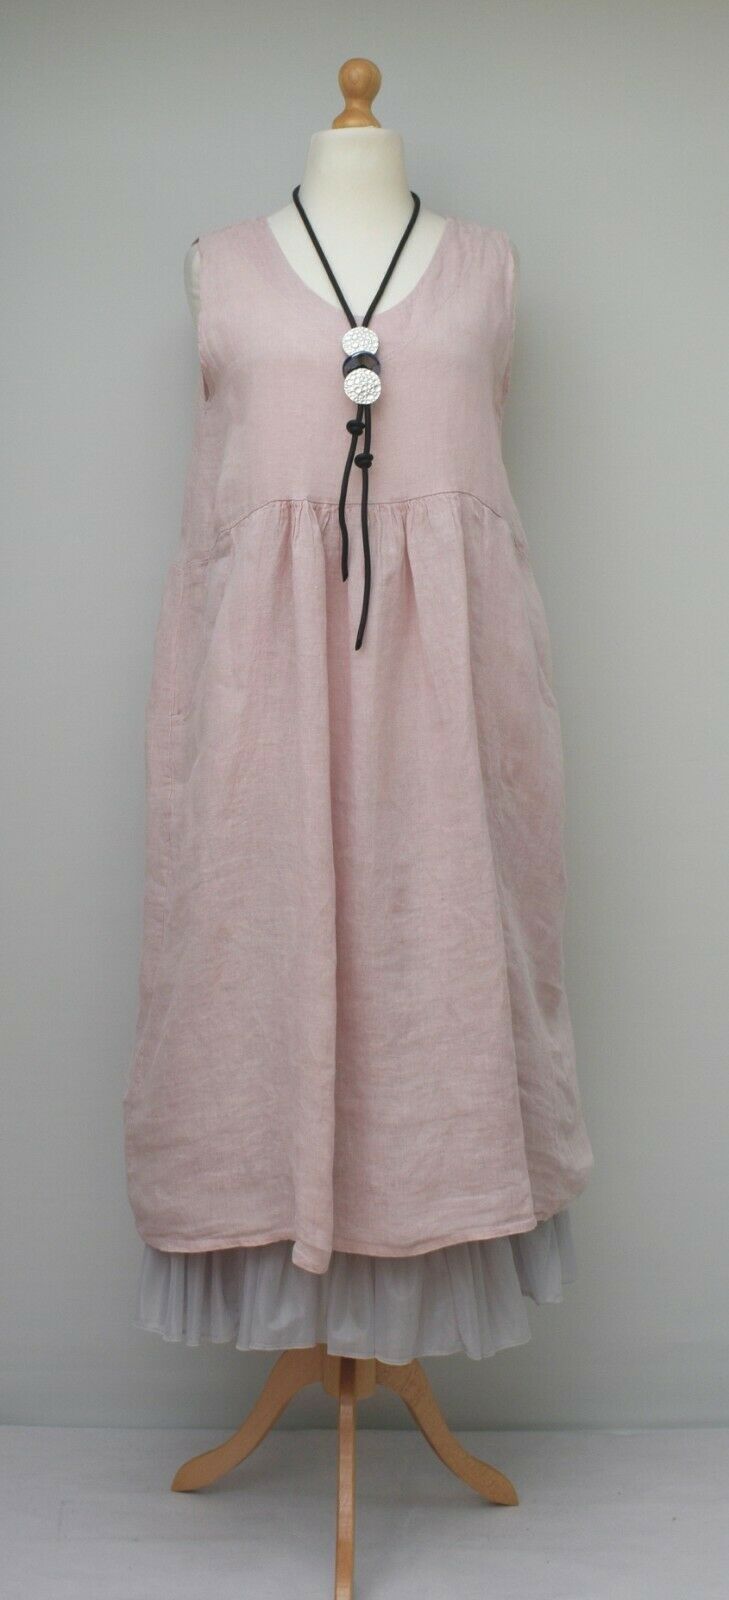 LAGENLOOK LINEN OVERSIZED PLAIN 2 POCKETS LONG DRESS**PALE PINK**BUST UP TO 46""